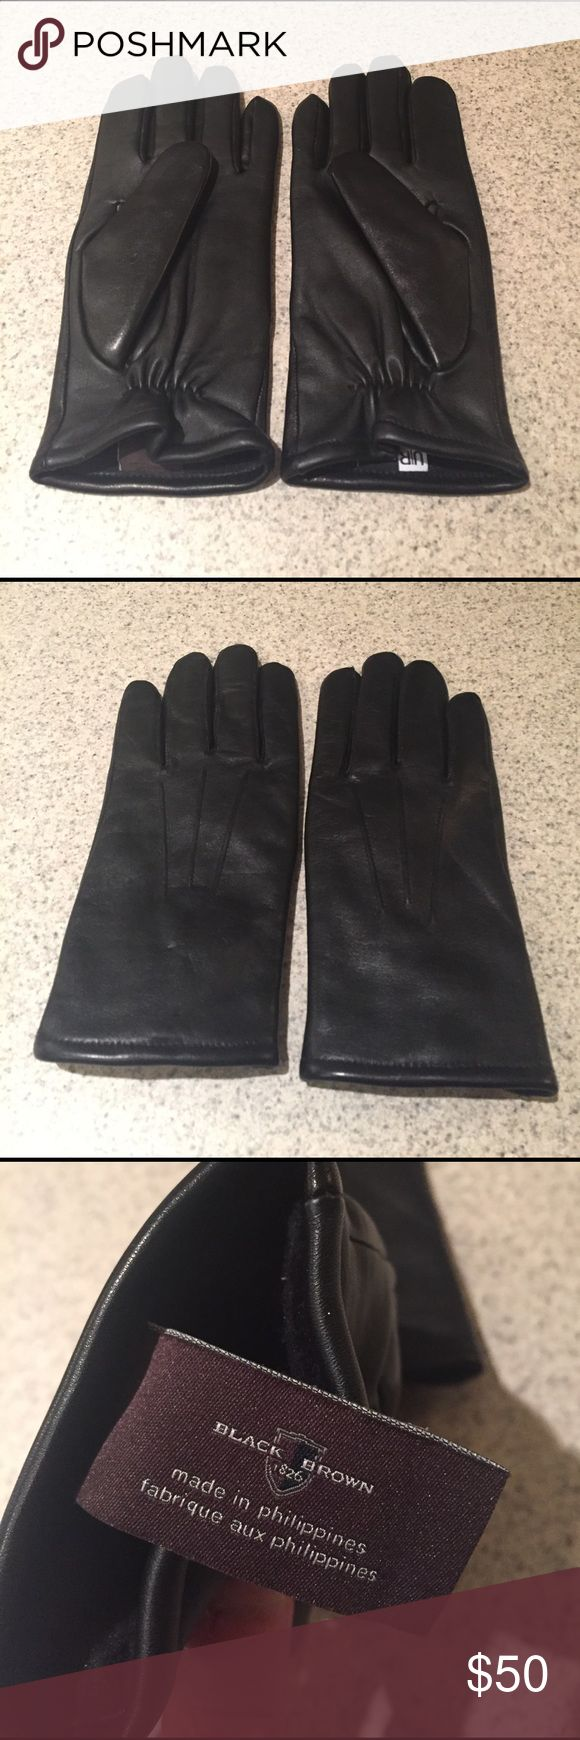 Mens leather gloves black friday - Black Brown Leather Gloves